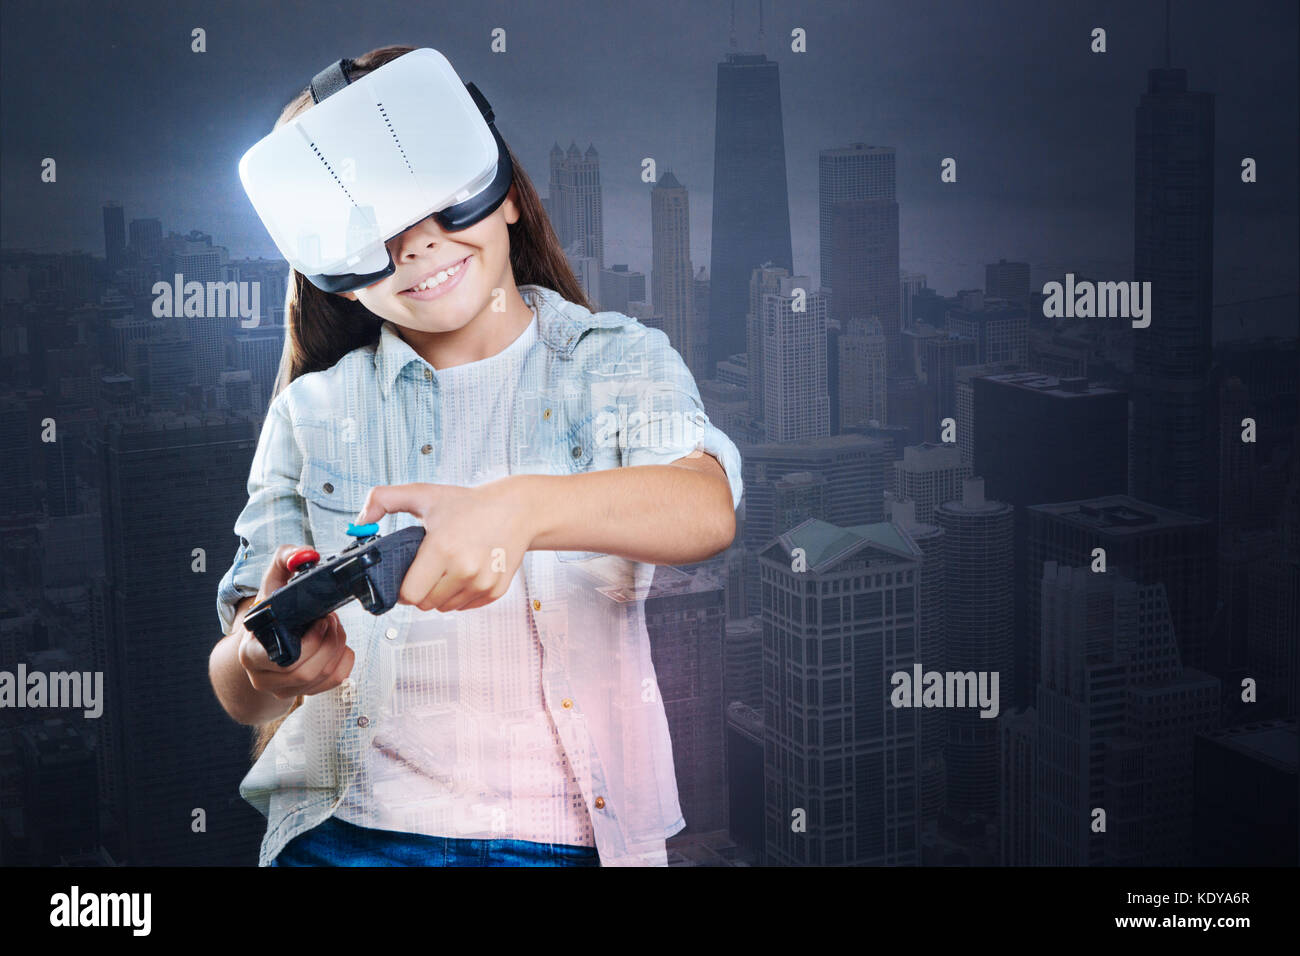 Upbeat girl playing VR game with controller - Stock Image